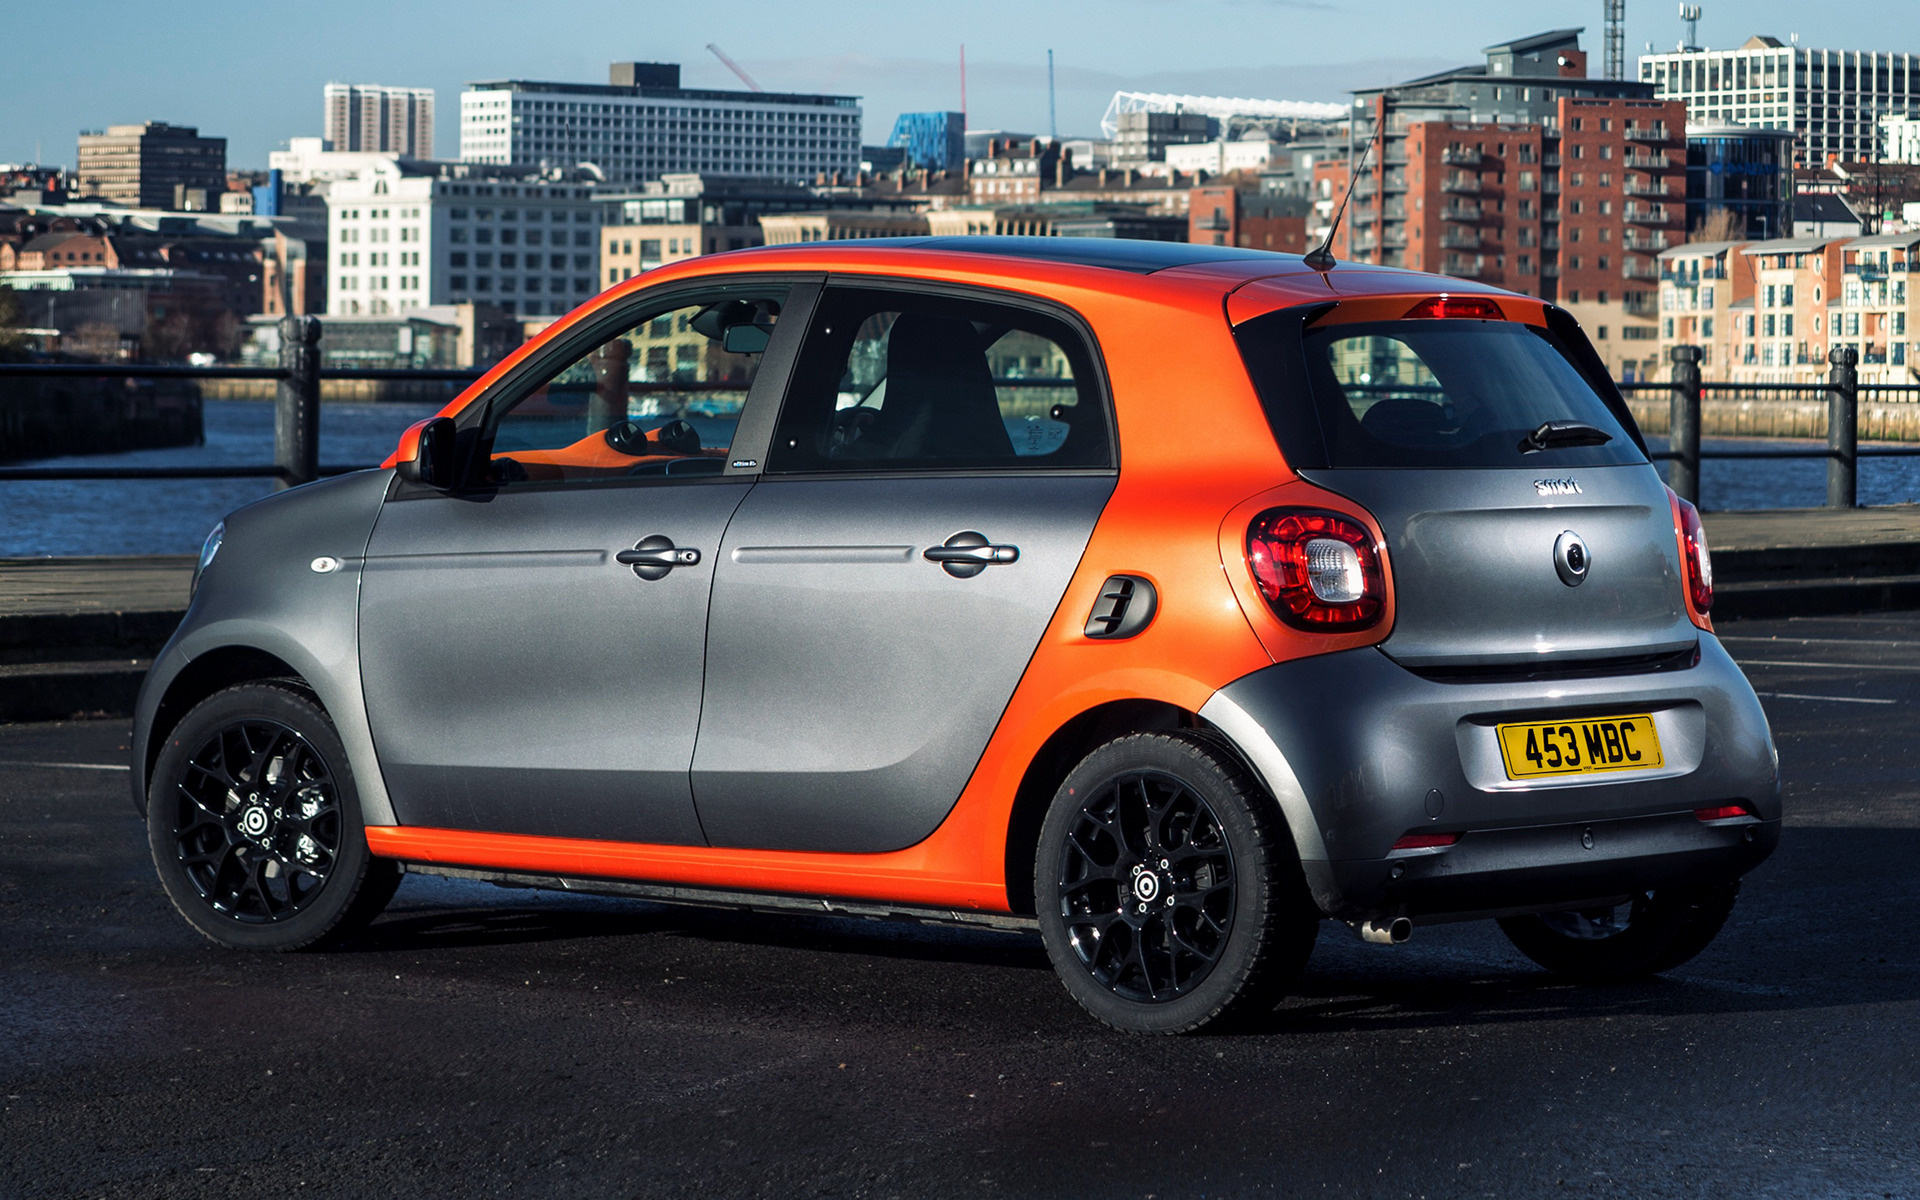 Prime Buick Gmc >> 2015 Smart Forfour edition #1 (UK) - Wallpapers and HD